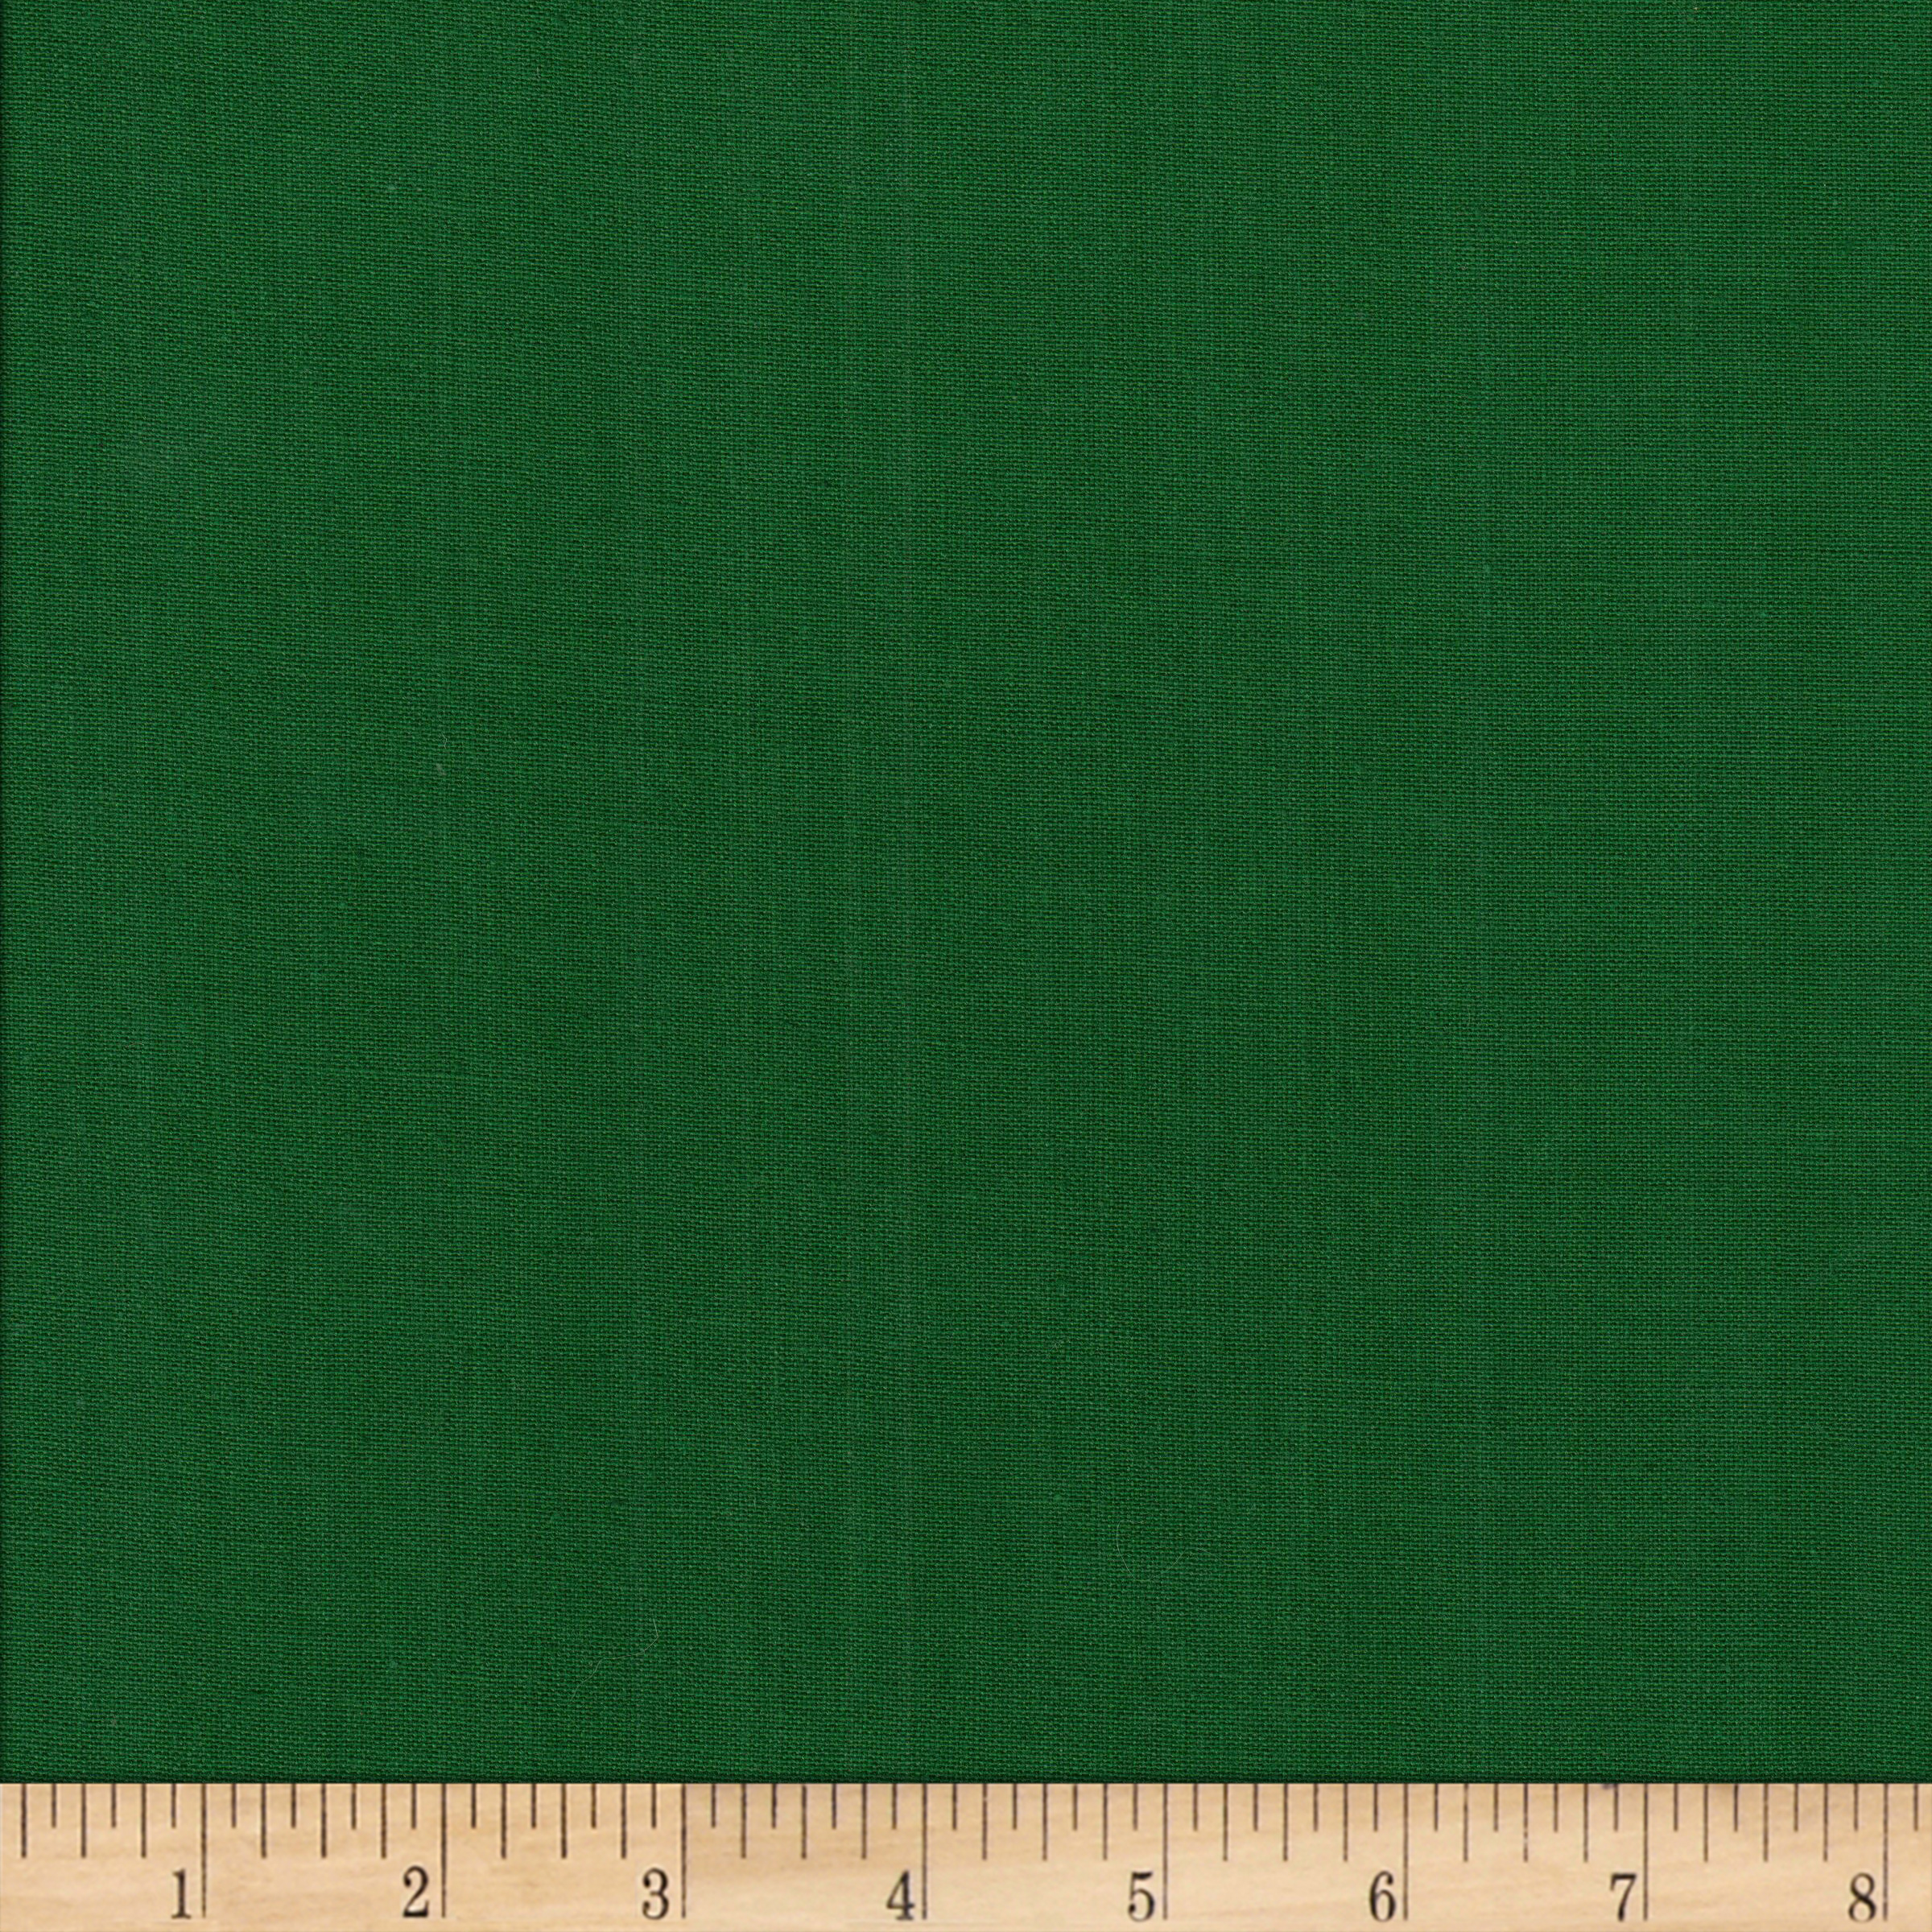 Luminary Green Fabric